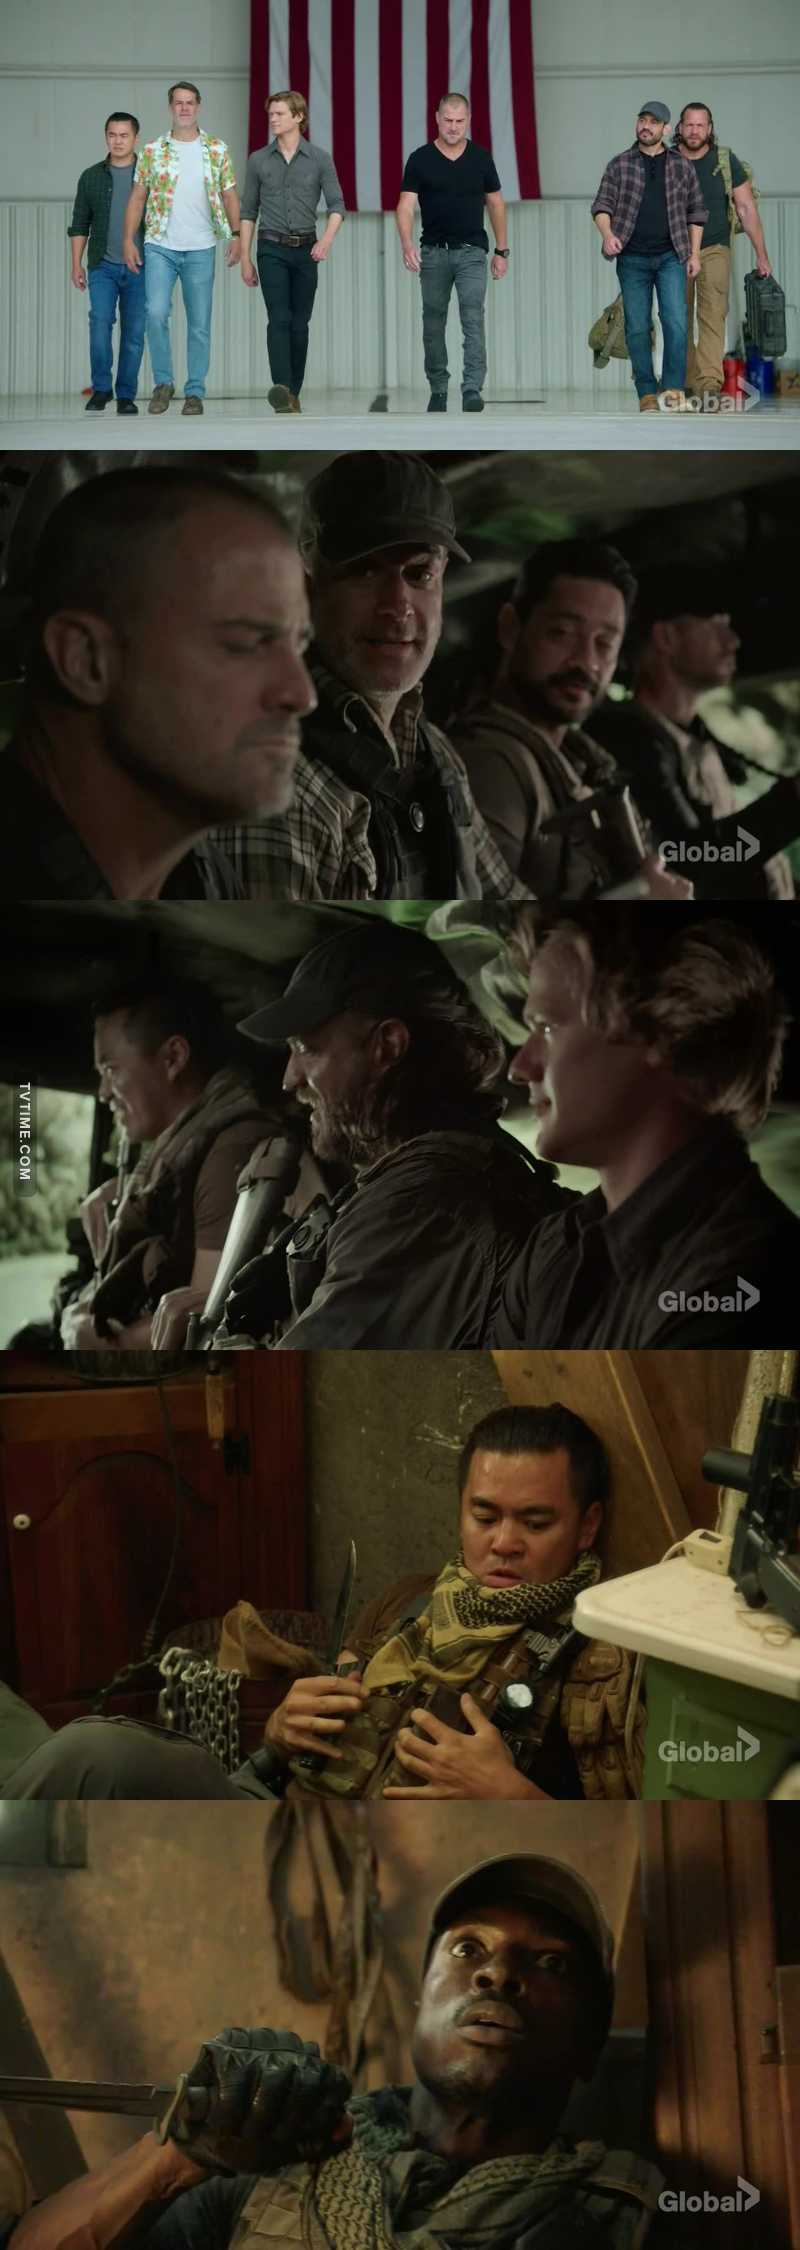 Wow what a bad ass team, really great episode full of action I love those guys they were amazing.